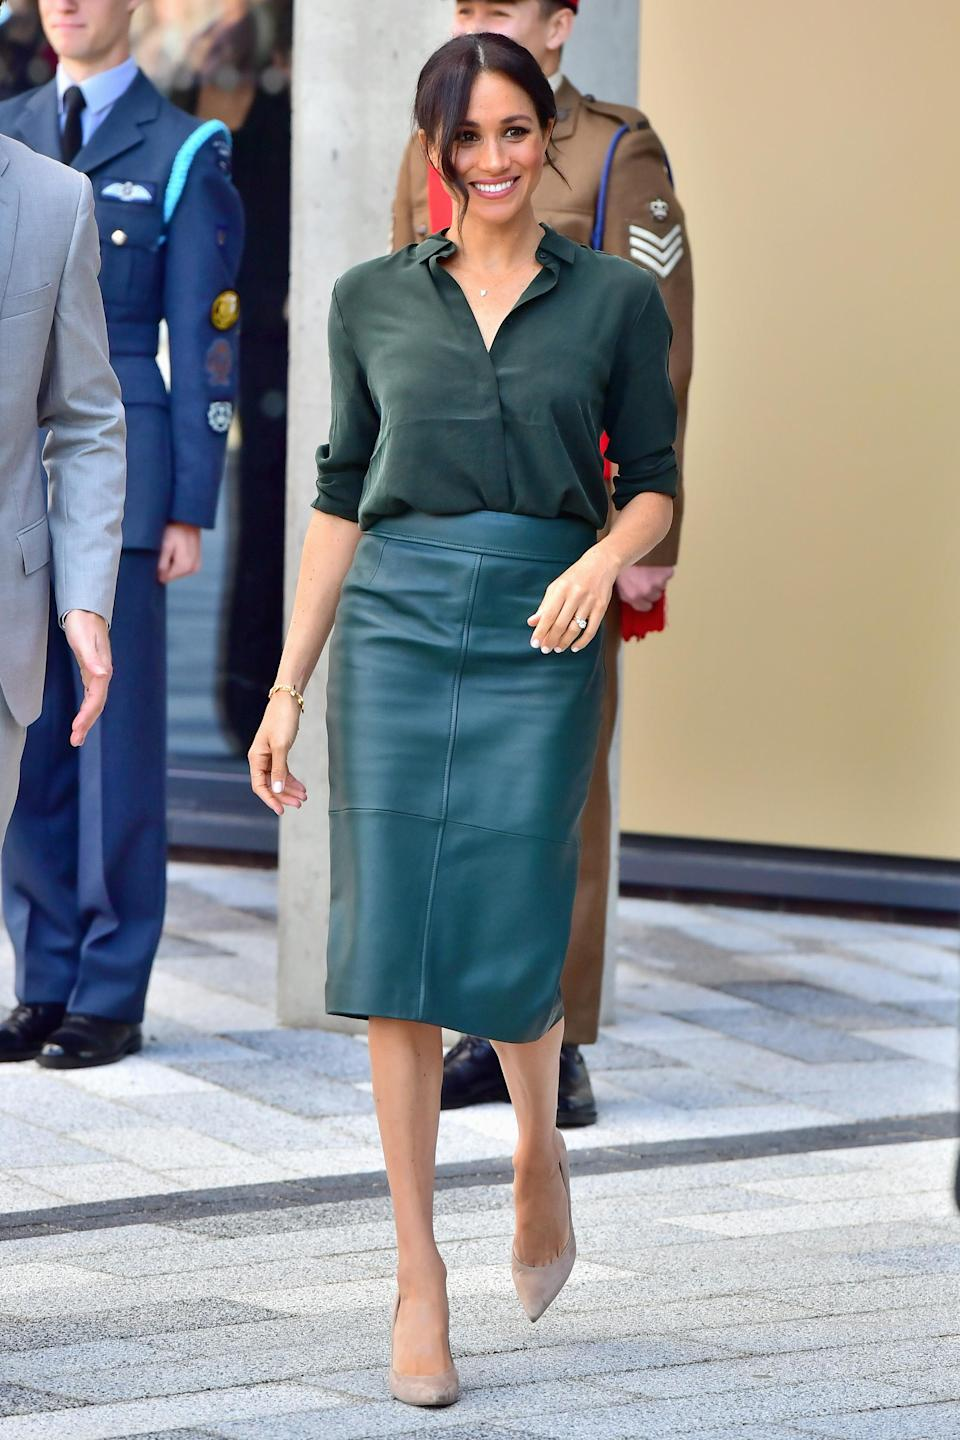 The Duchess of Sussex photographed in Sussex on 3 October 2018 [Photo: Getty]